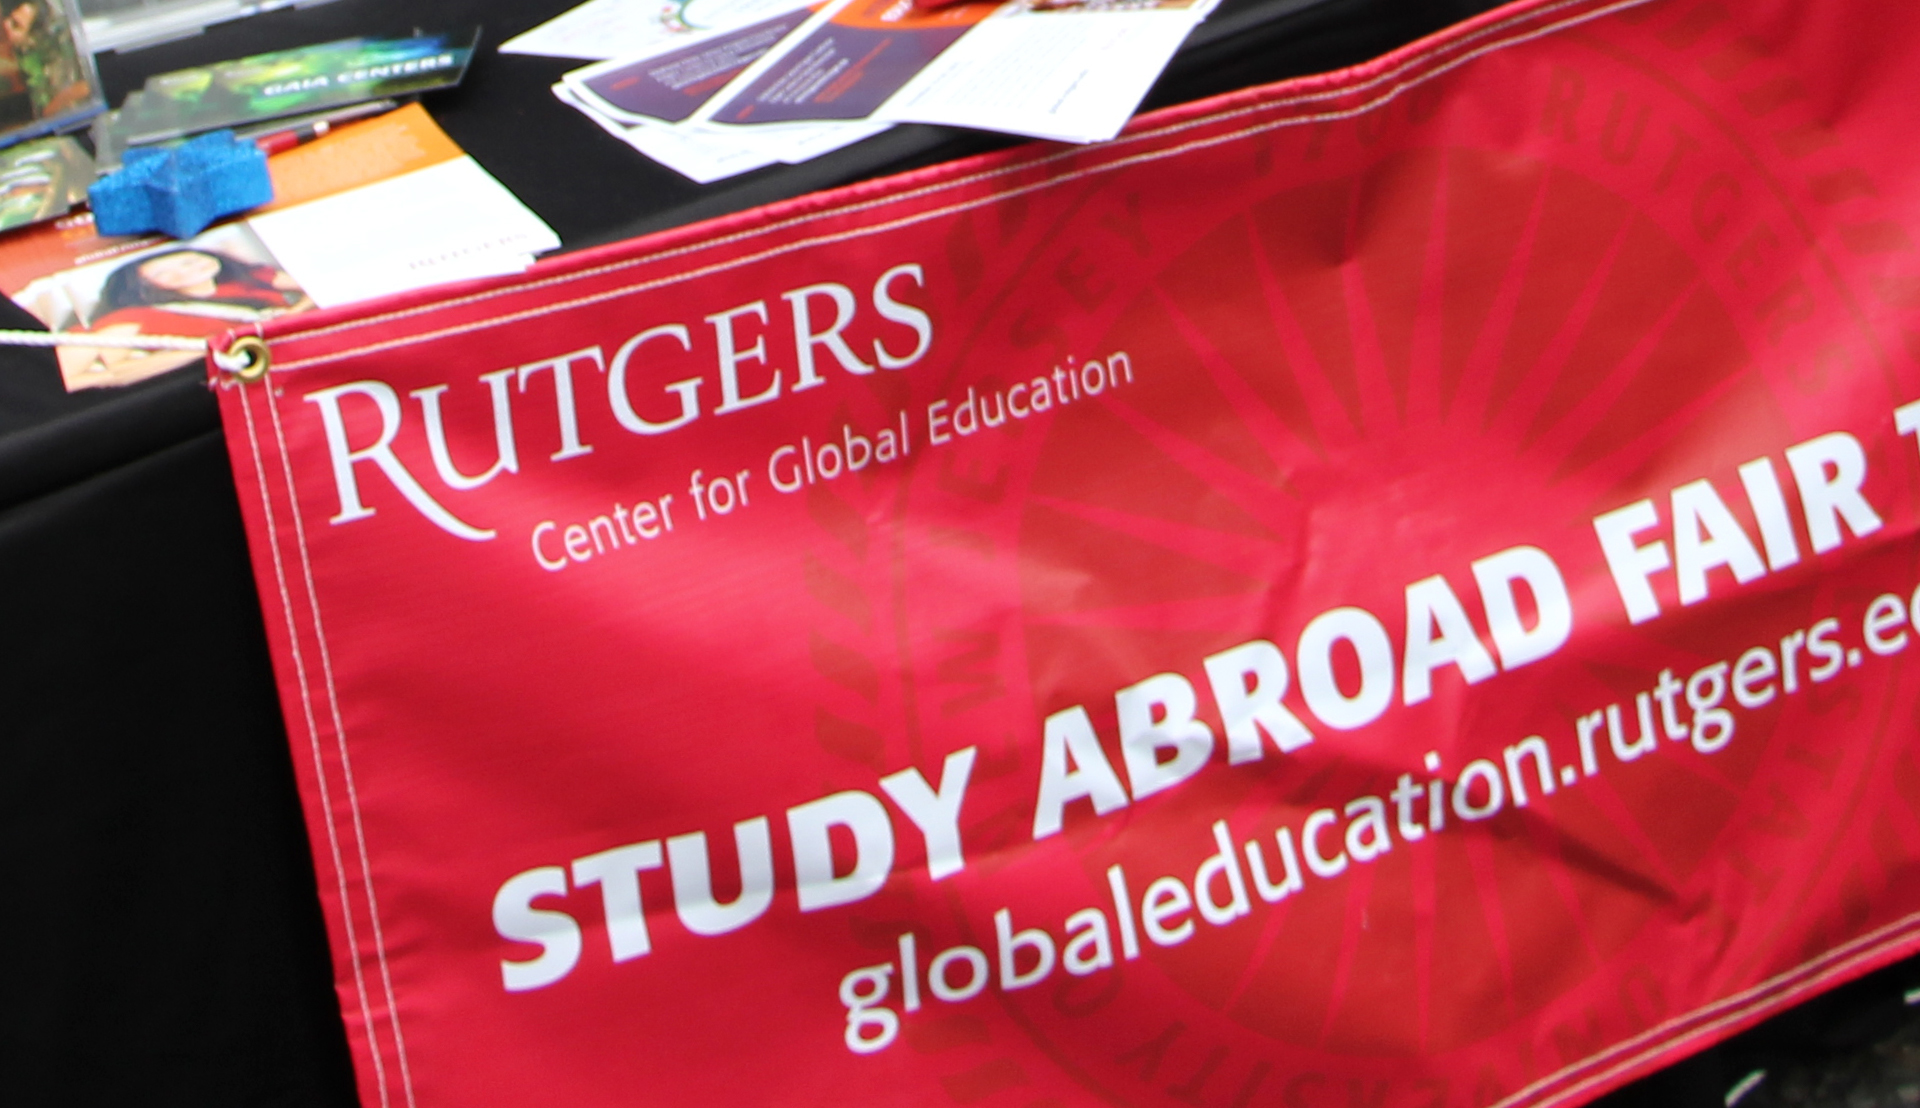 Rutgers Global - Spring 2016 Study Abroad Fair, study abroad fair today banner on exhibit table with assortment of Rutgers Global flyers